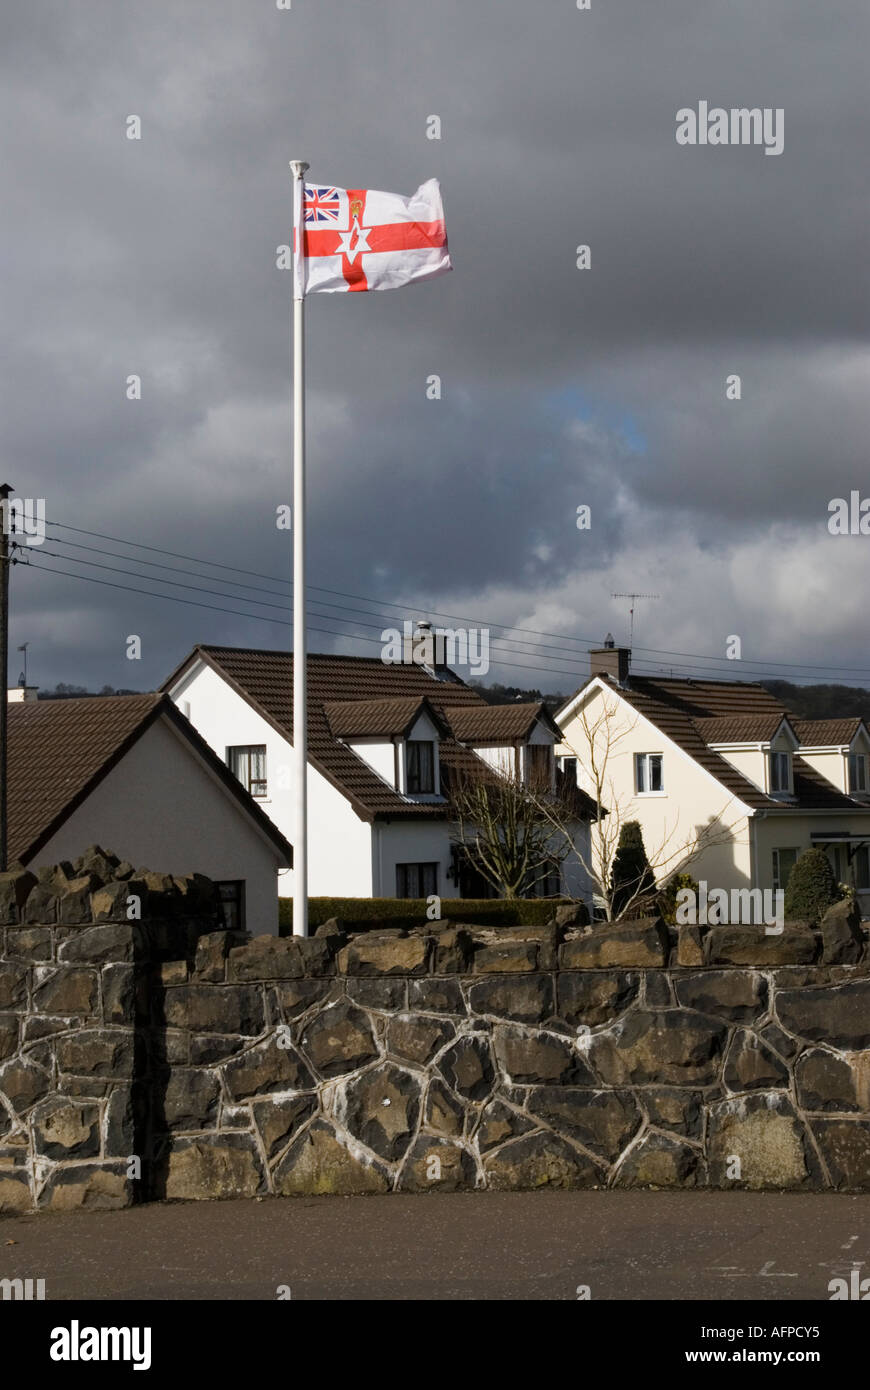 The loyalist Ulster Unionist flag flies over the village of Broughshane in Northern Ireland - Stock Image